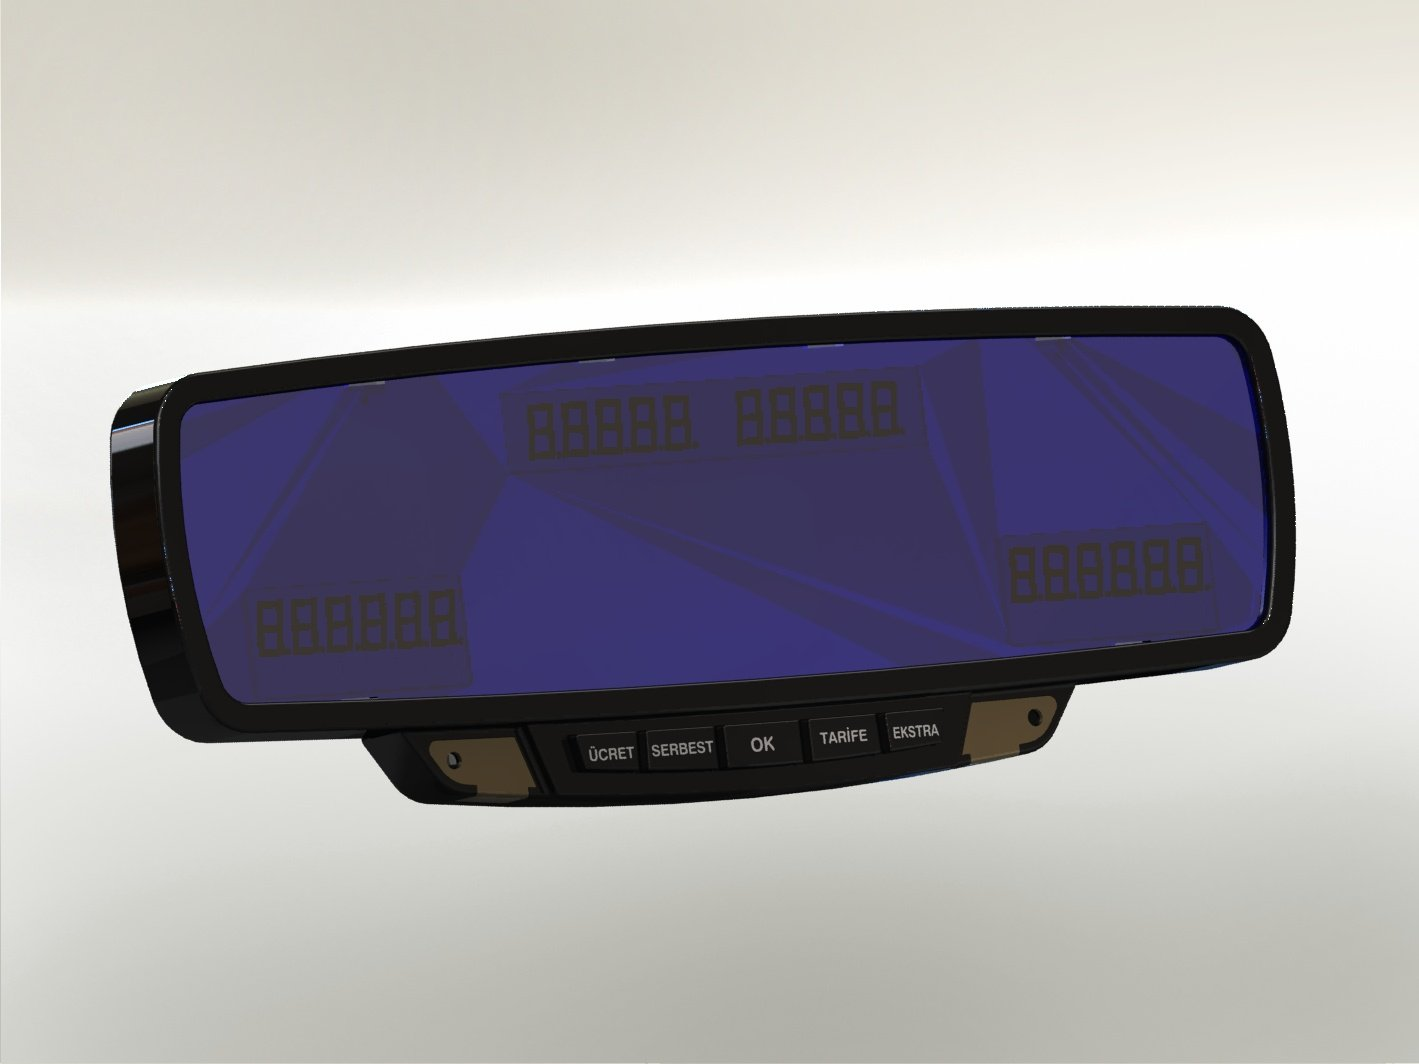 Mirror Taximeter with printer